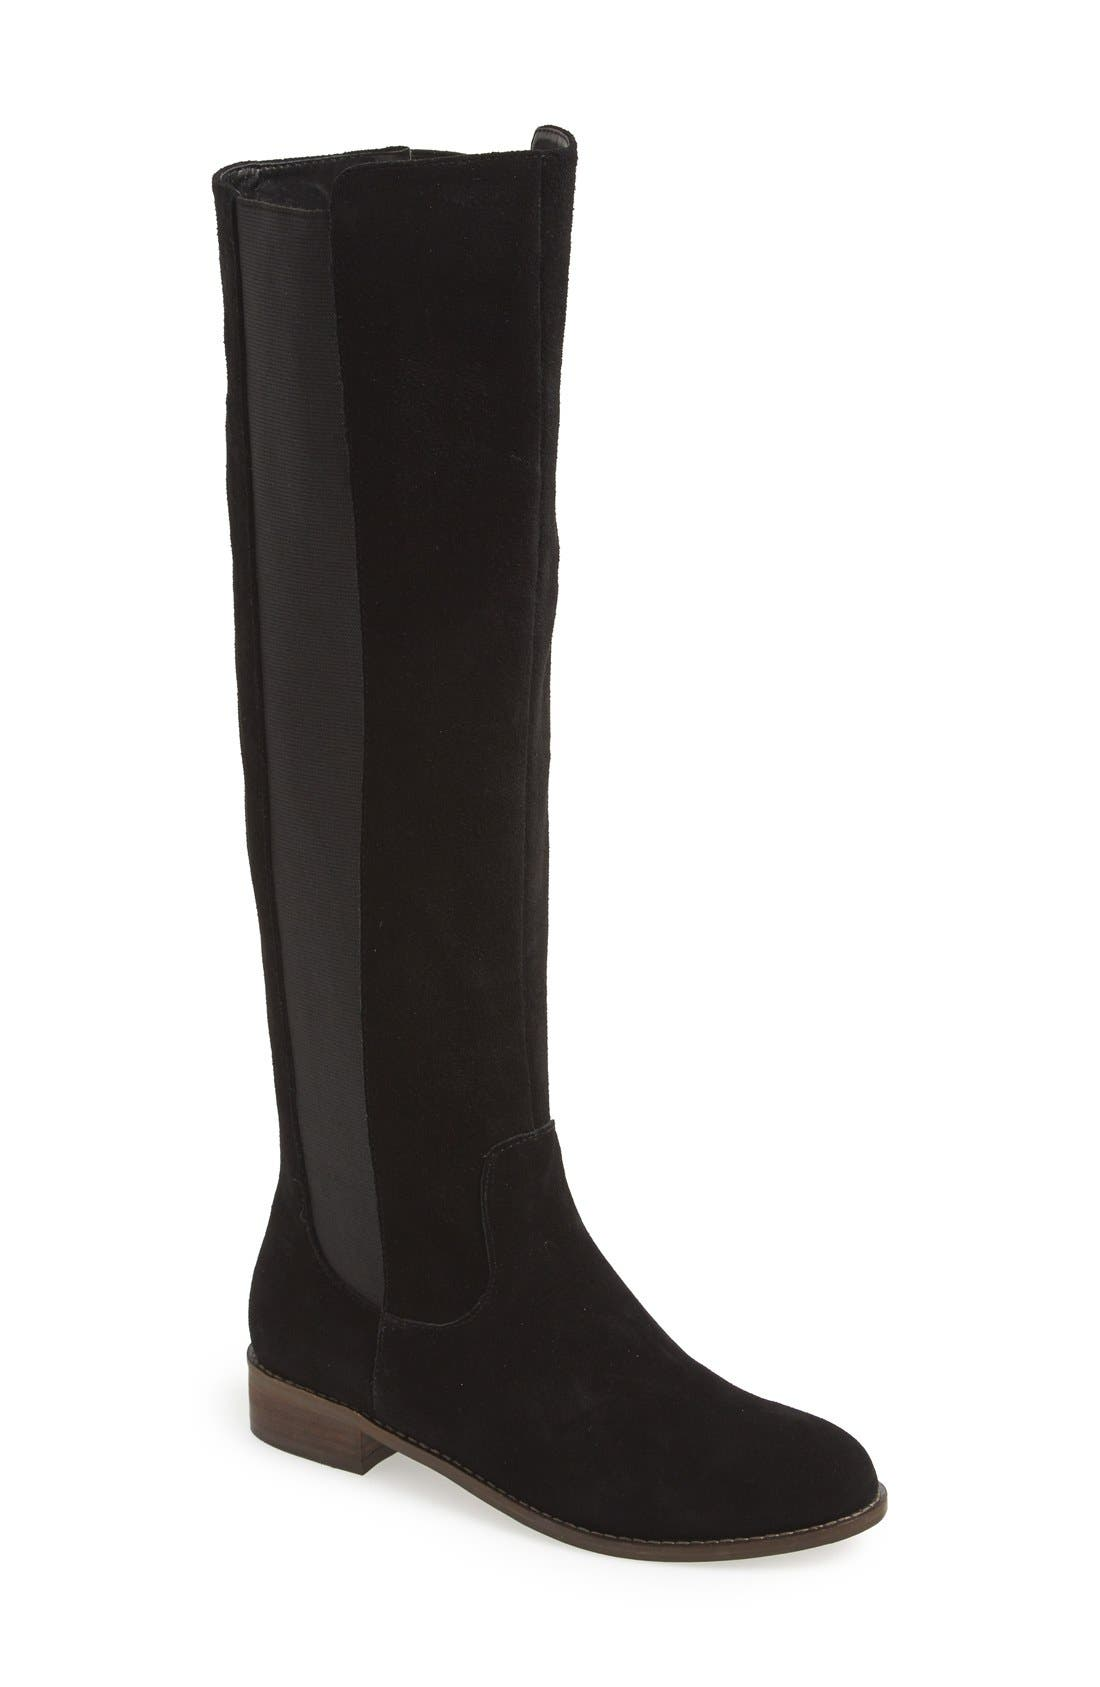 'Timber' Suede Knee High Boot,                             Main thumbnail 1, color,                             001